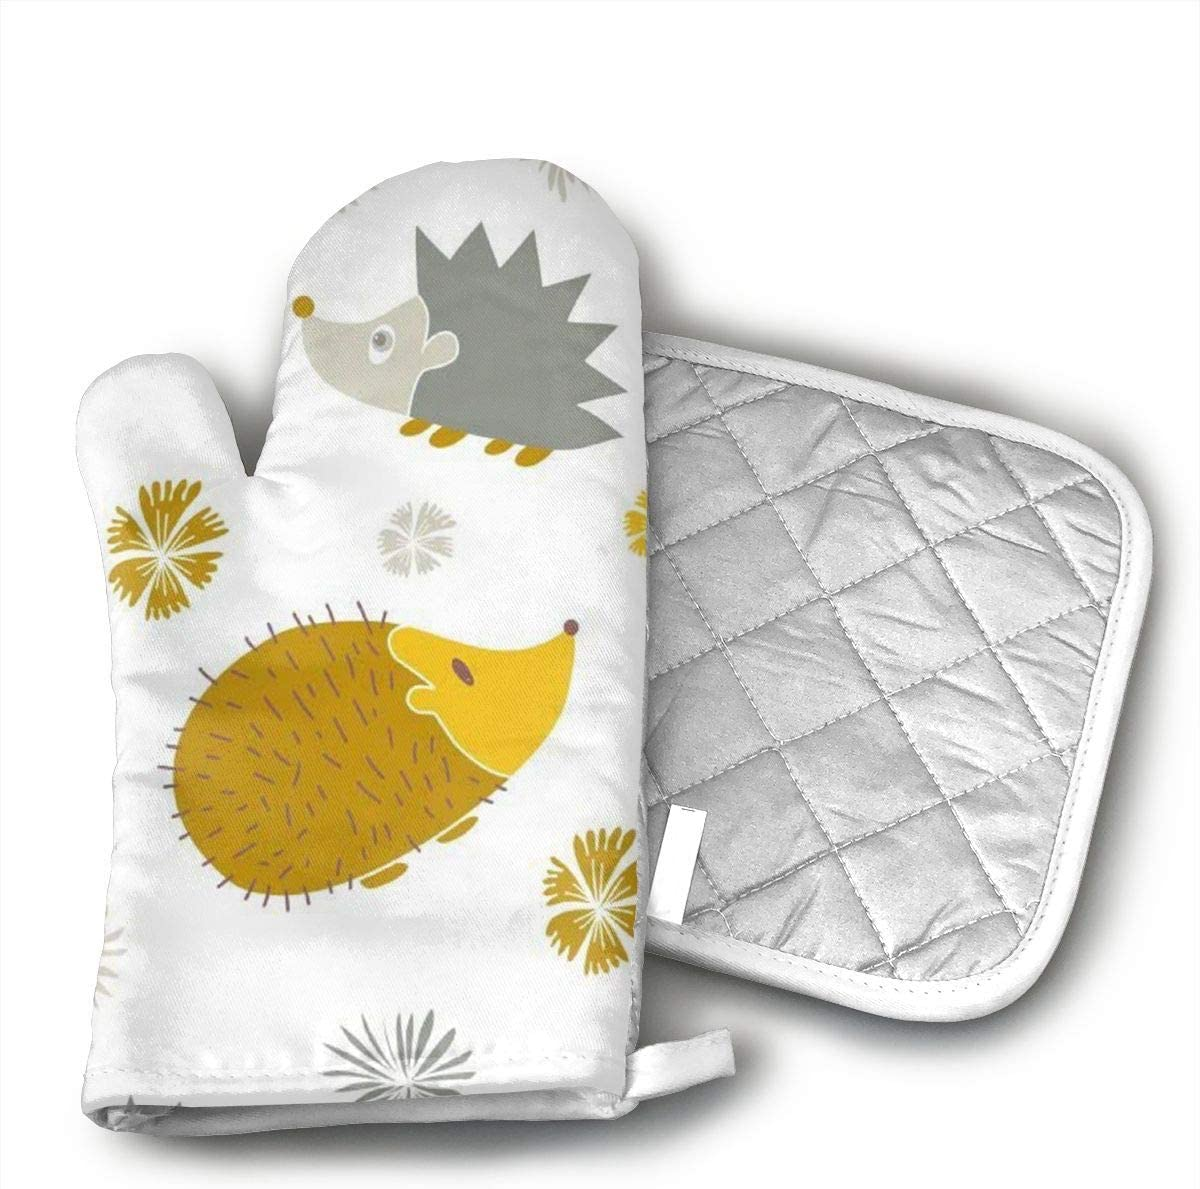 QEDGC Yellow Gray Hedgehog Cotton Oven Mitts Pot Holders Set - Kitchen Oven Mitt Heat Resistant, Non-Slip Grip Oven Gloves PotholderCooking,Baking & BBQ,